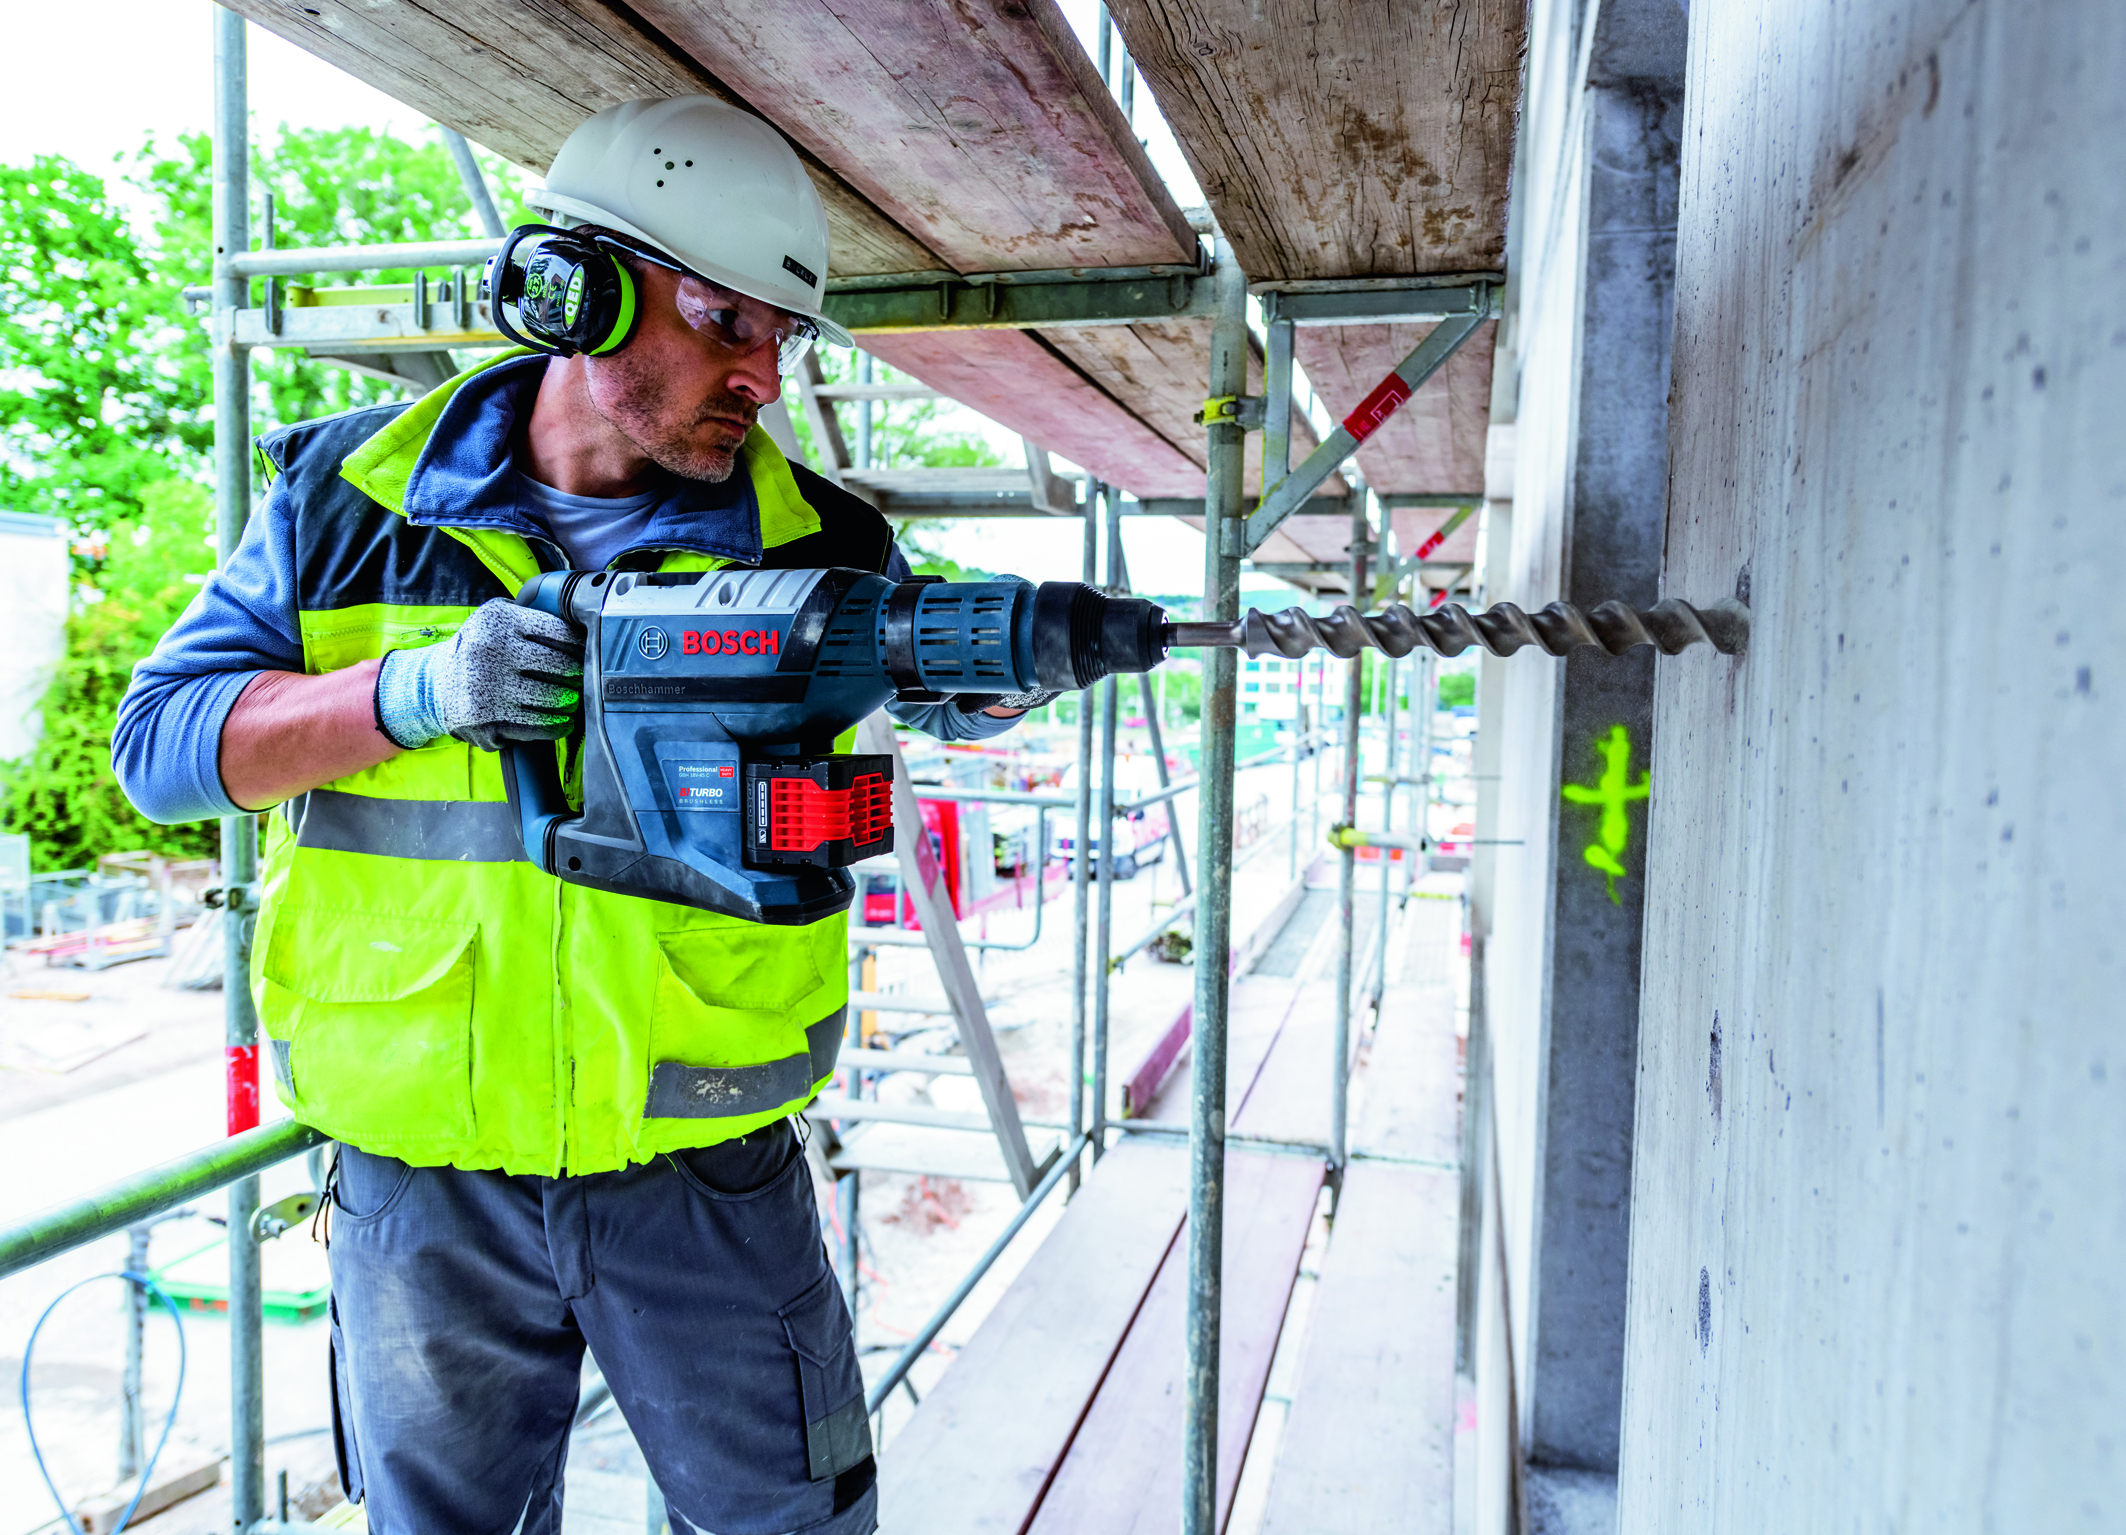 High drilling performance confirmed by an independent test institute: GBH 18V-45 C Professional Biturbo hammer from Bosch for professionals